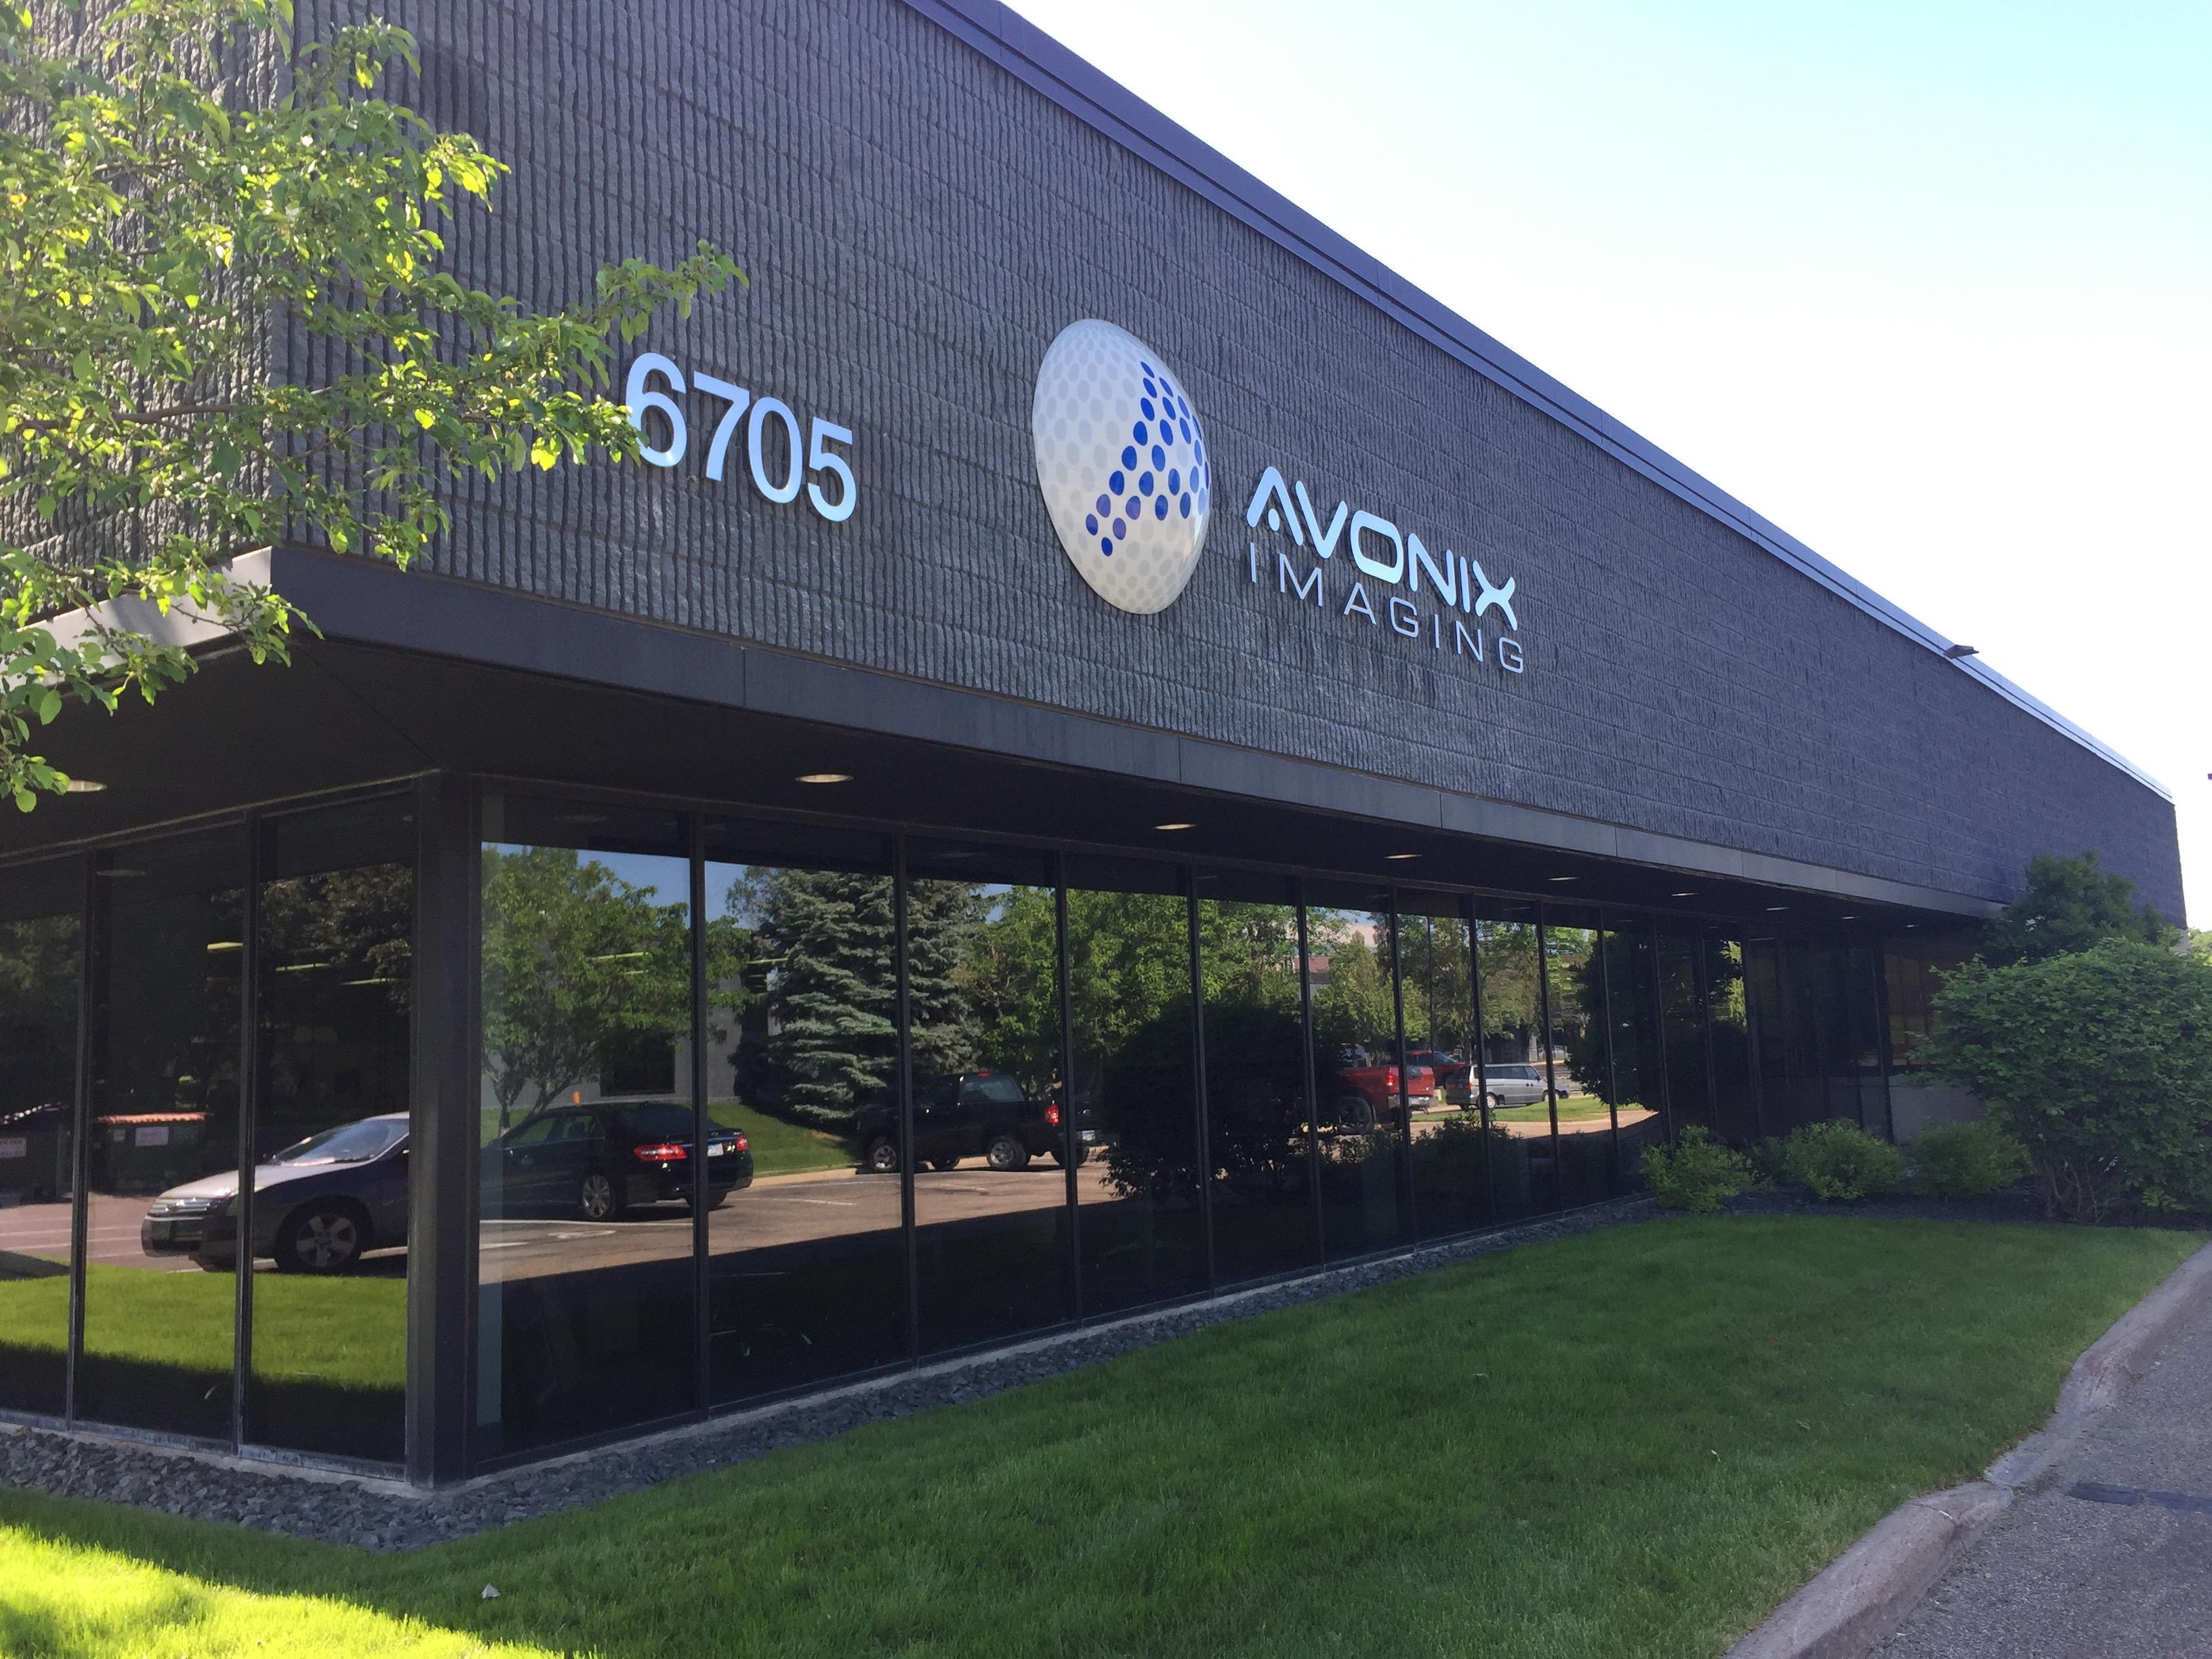 Avonix Imaging In Maple Grove Mn Whitepages